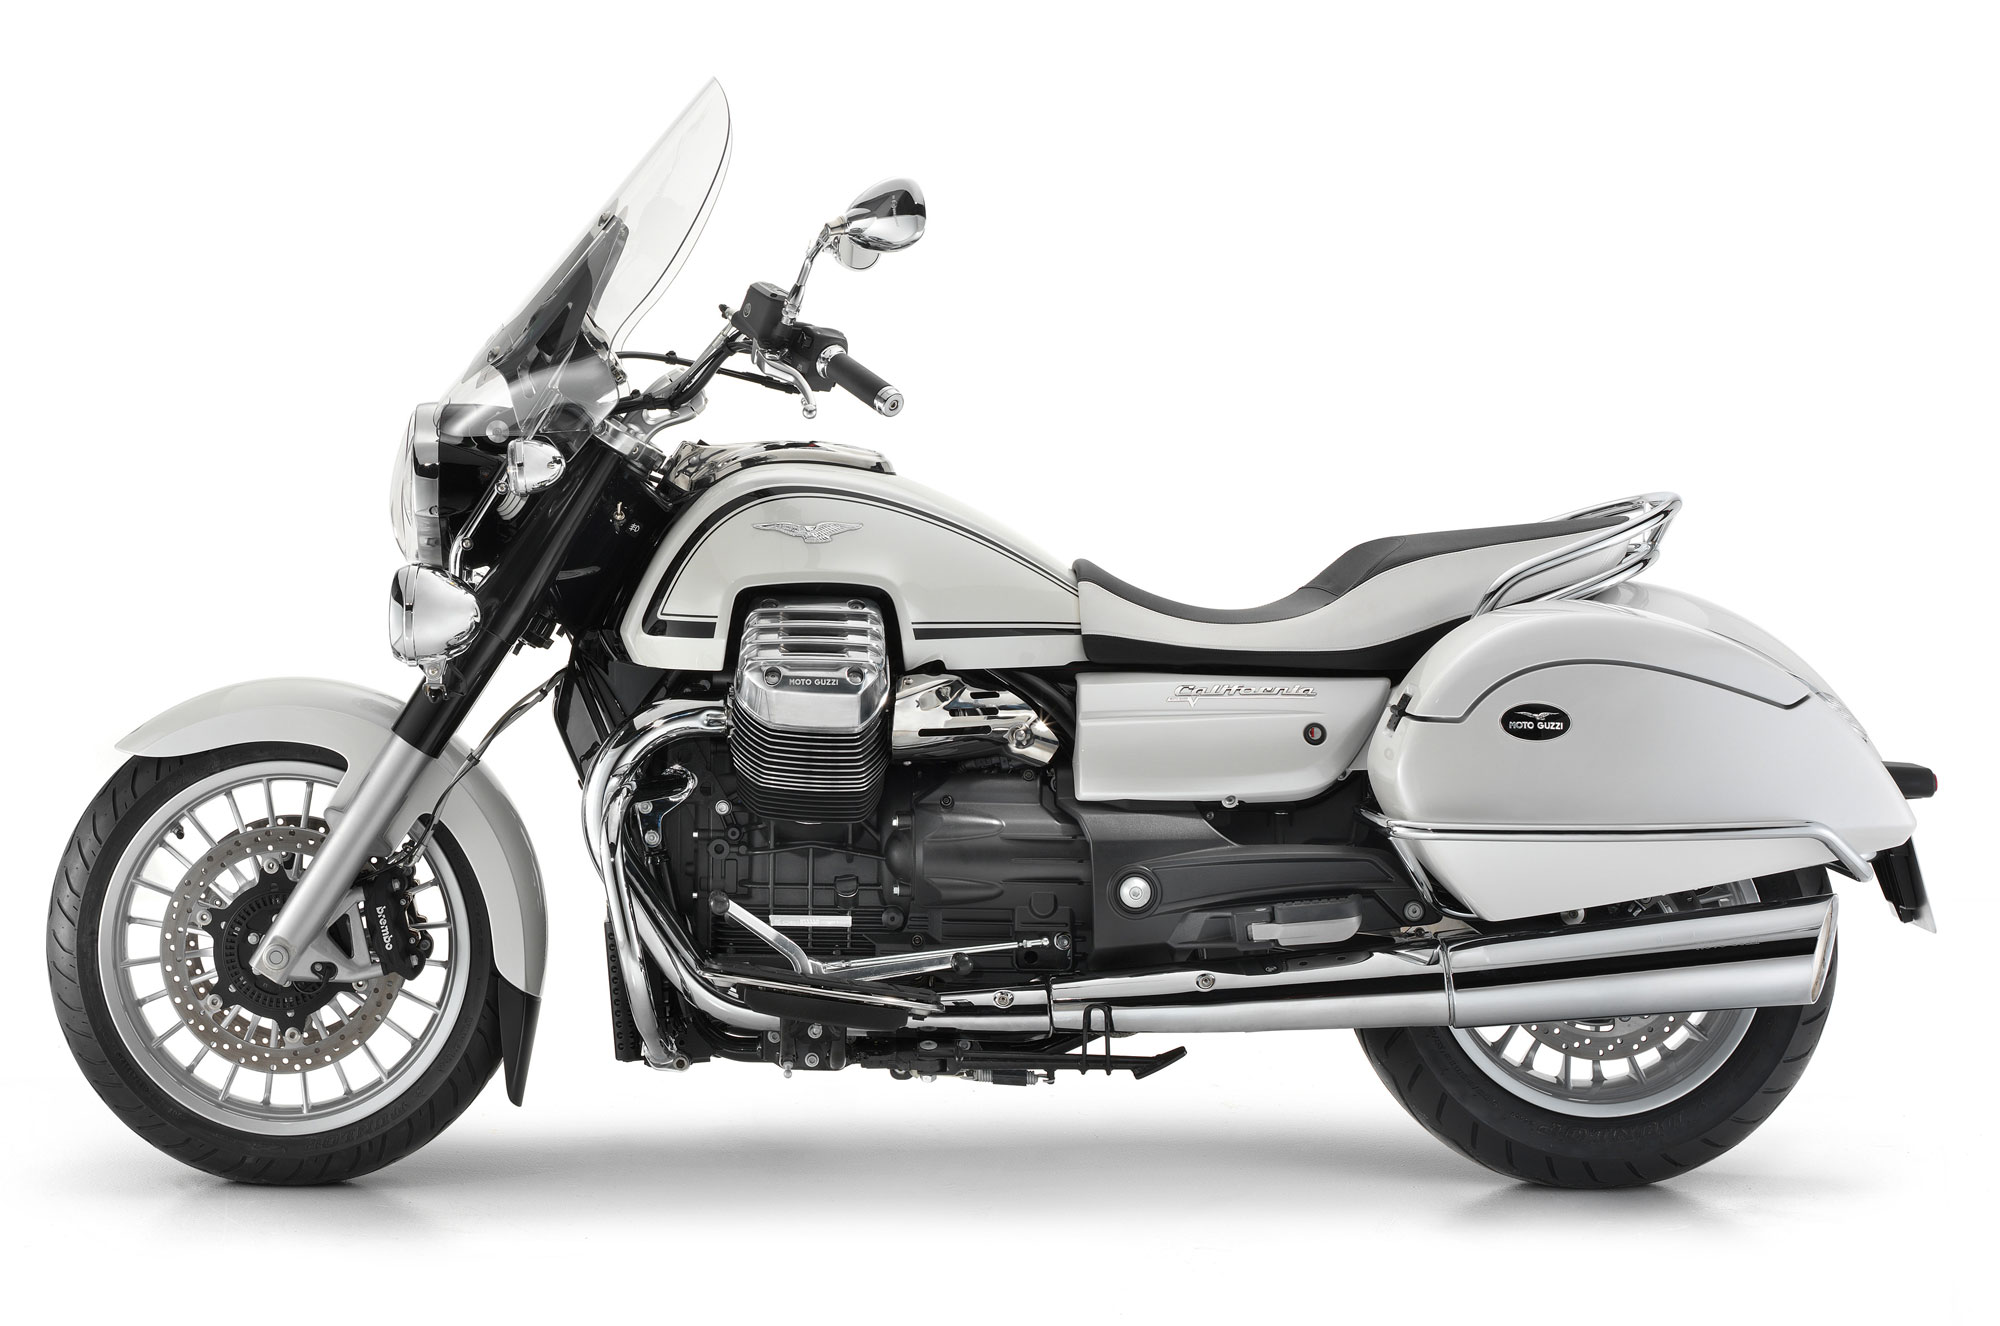 moto guzzi california 1400 touring 2014 2015 autoevolution. Black Bedroom Furniture Sets. Home Design Ideas